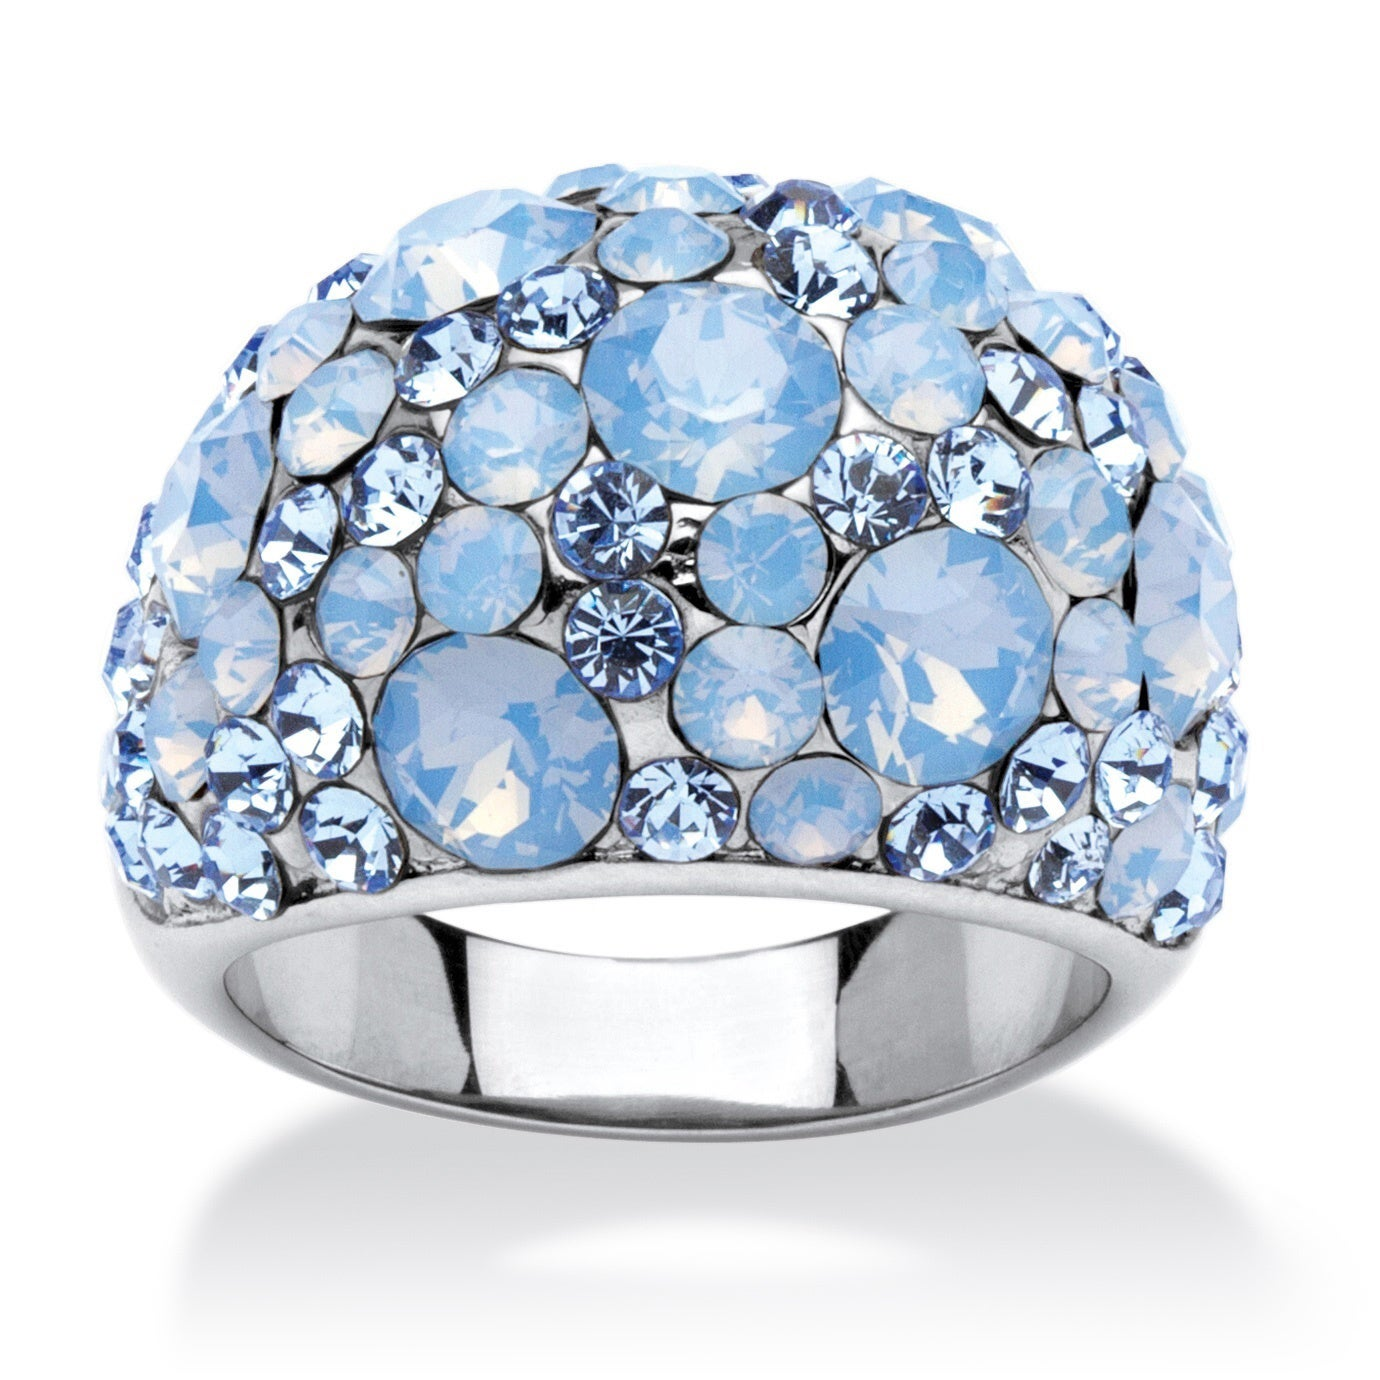 760d7c29a Shop Blue and Aurora Borealis Crystal Dome Ring MADE WITH SWAROVSKI  ELEMENTS in Stainless Steel - On Sale - Free Shipping On Orders Over $45 -  Overstock - ...